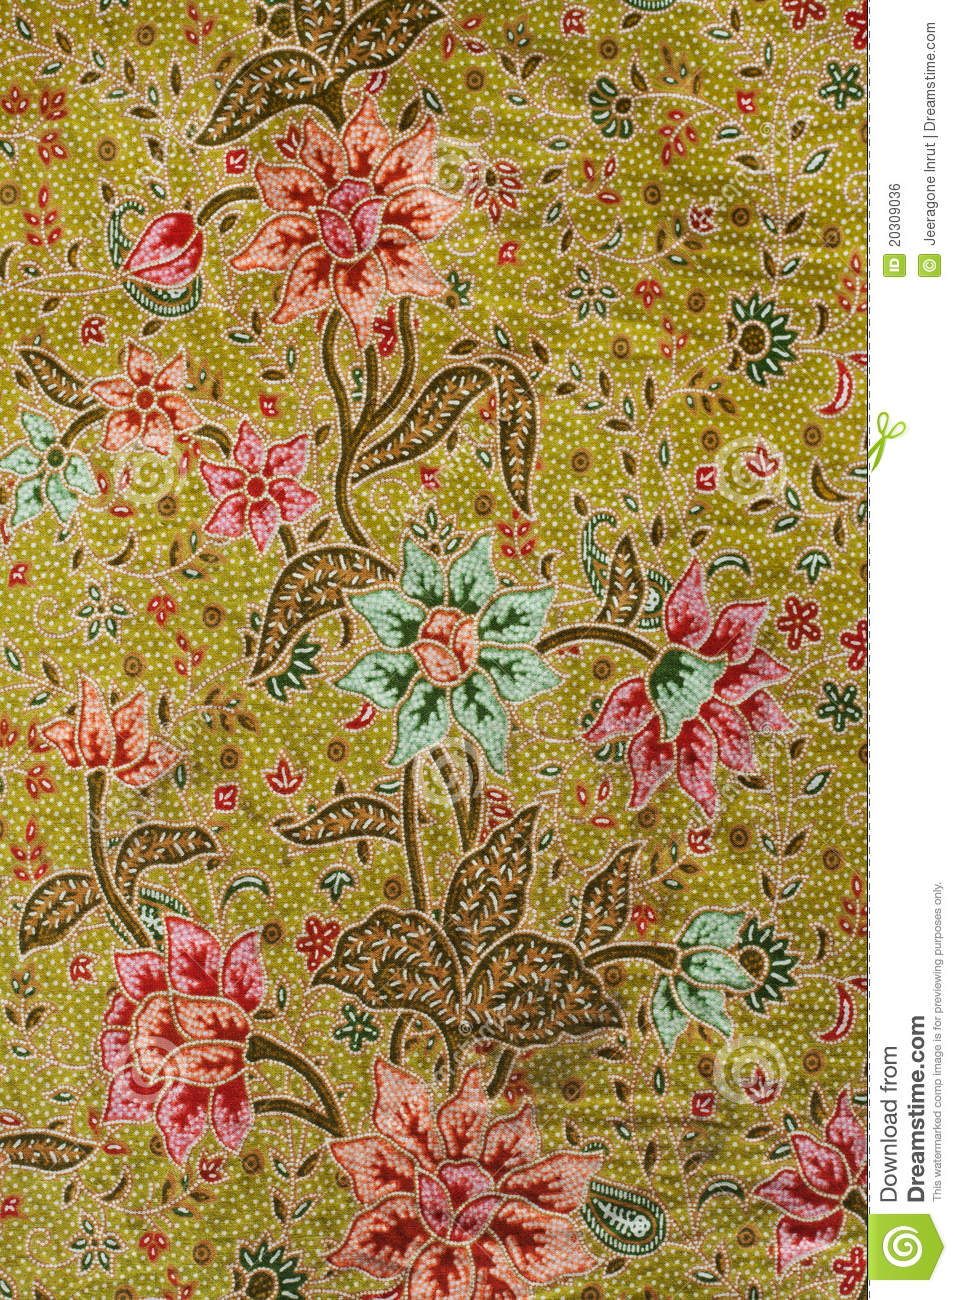 Batik Design In Thailand Stock Photo. Image Of Colorful